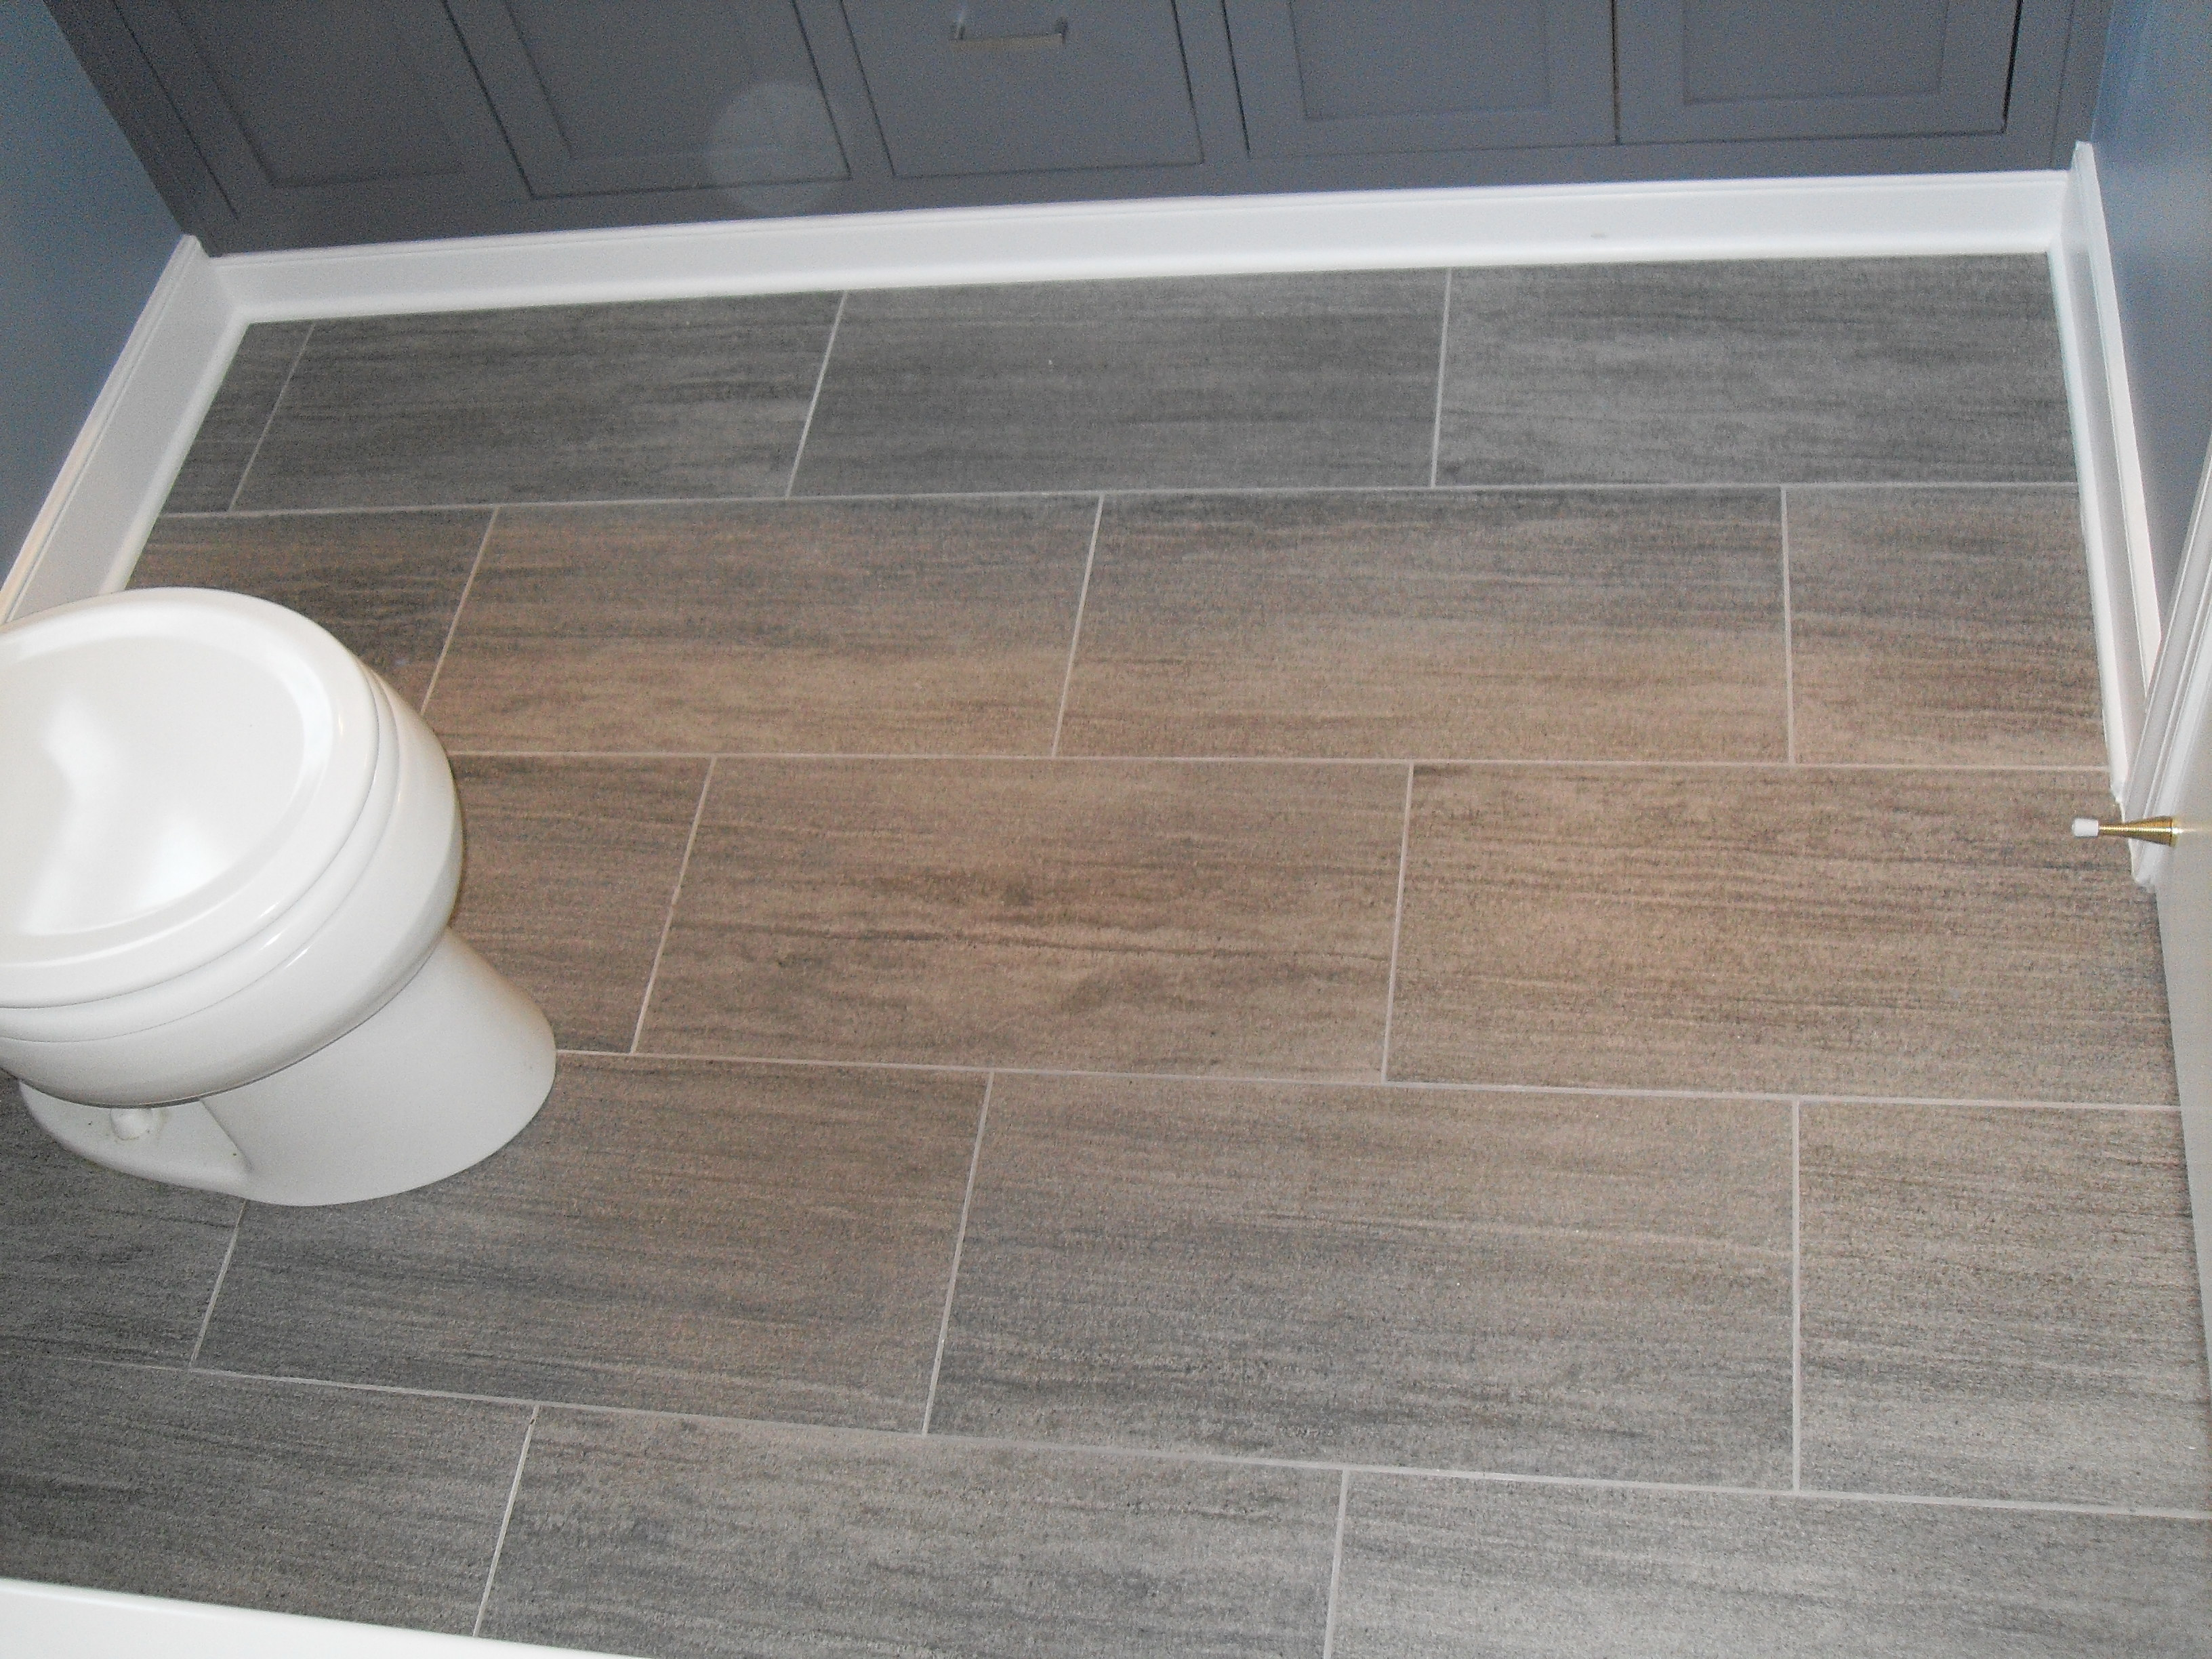 24 ideas to answer is ceramic tile good for bathroom floors vluu l100 m100 samsung l100 m100 dailygadgetfo Images